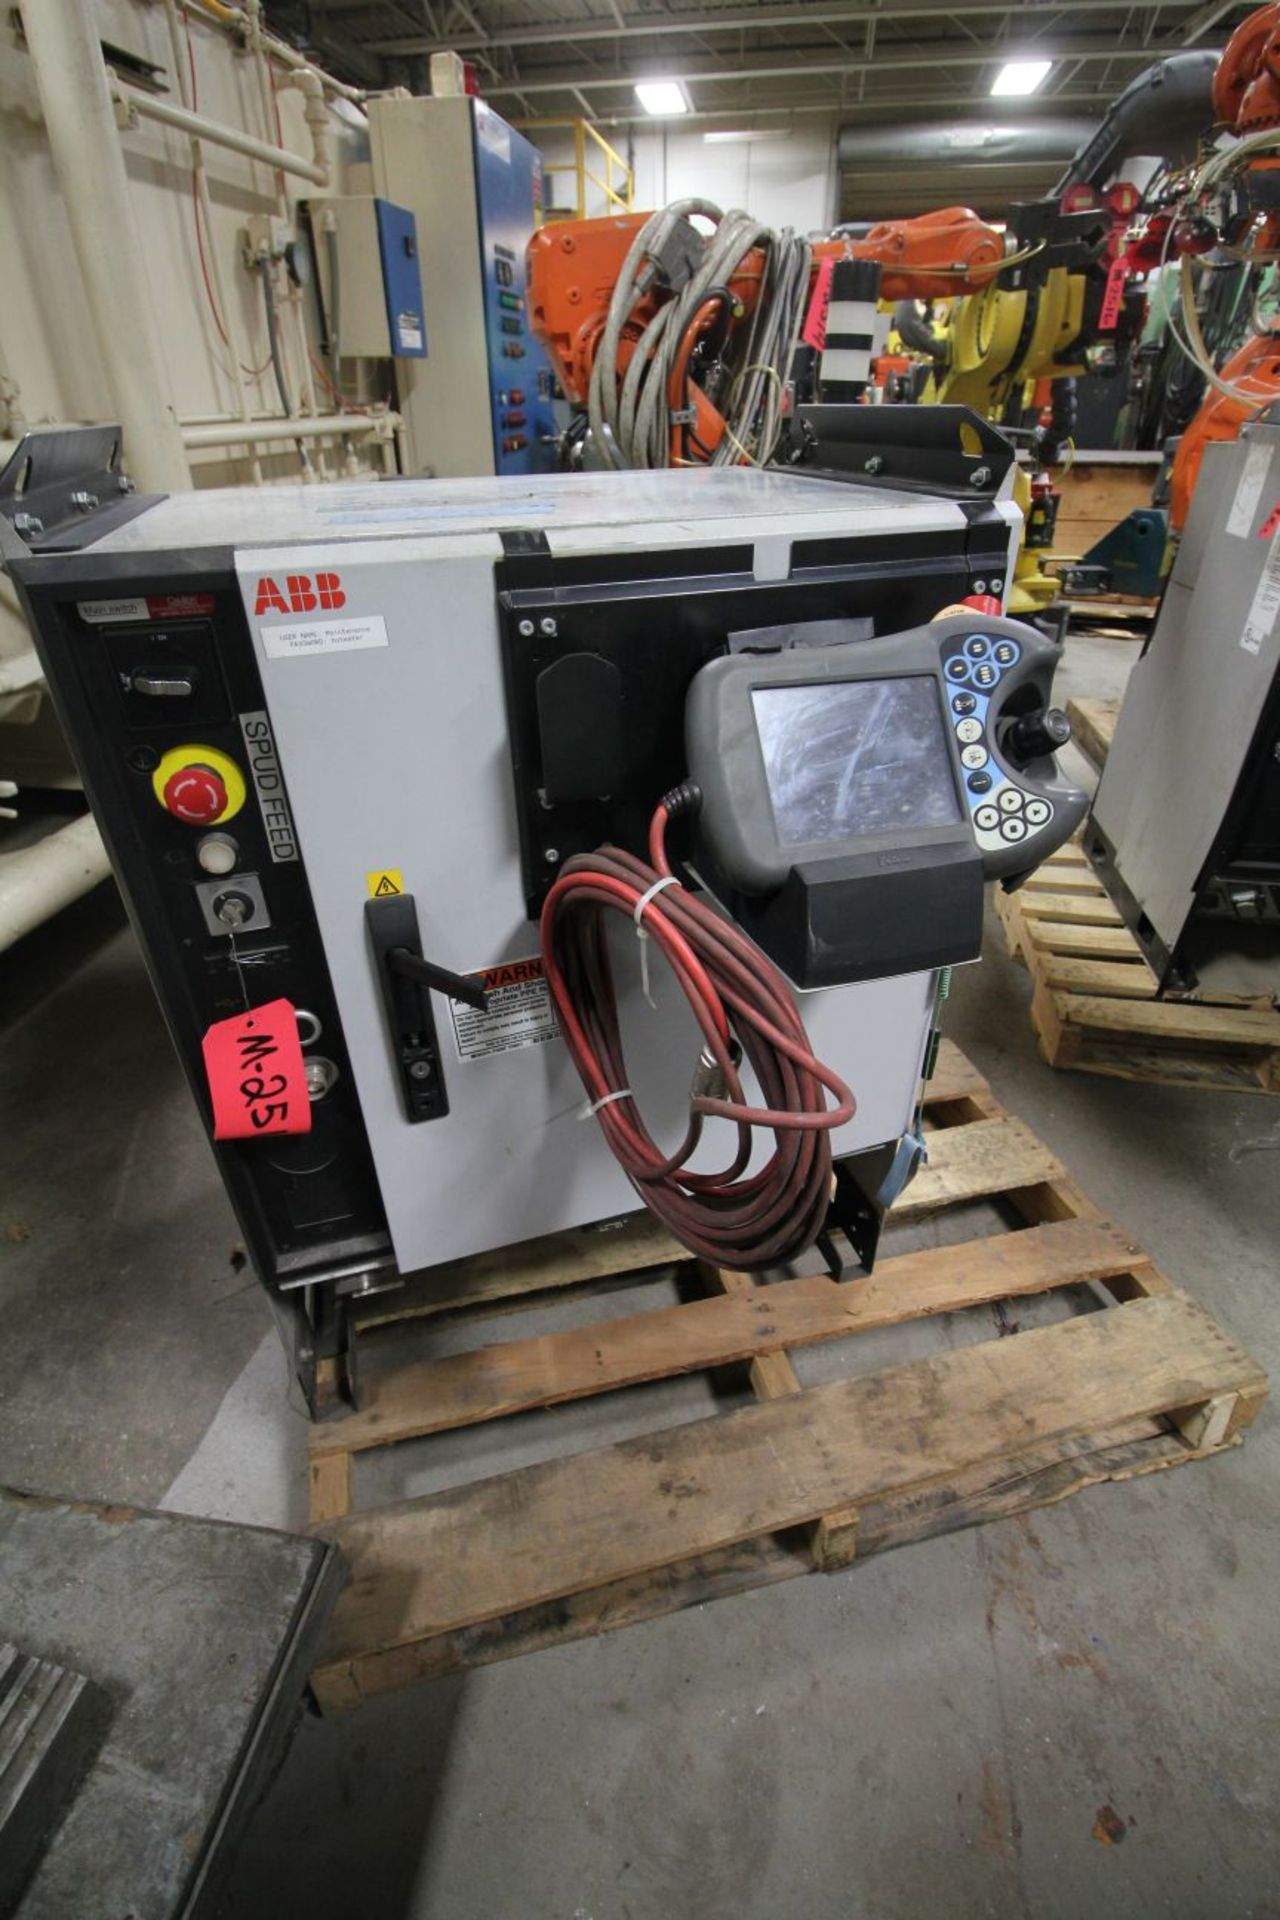 Lot 1 - ABB ROBOT IRB 2600 1.65/20KG WITH IRC5 CONTROLS, YEAR 2013 SN 500453